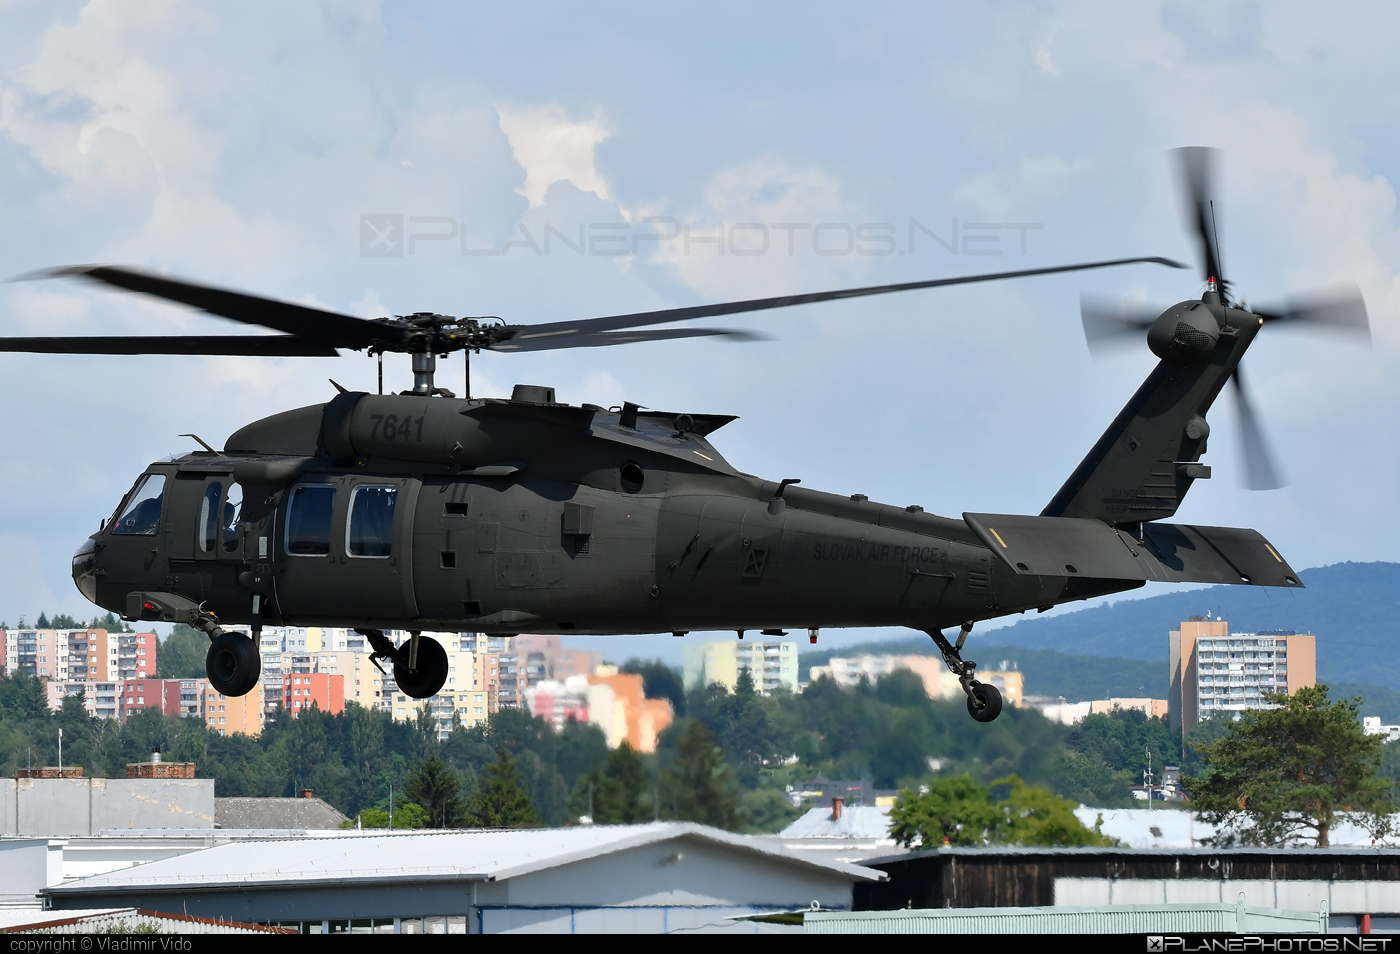 Sikorsky UH-60M Black Hawk - 7641 operated by Vzdušné sily OS SR (Slovak Air Force) #blackhawk #sikorsky #slovakairforce #uh60 #uh60blackhawk #uh60m #vzdusnesilyossr